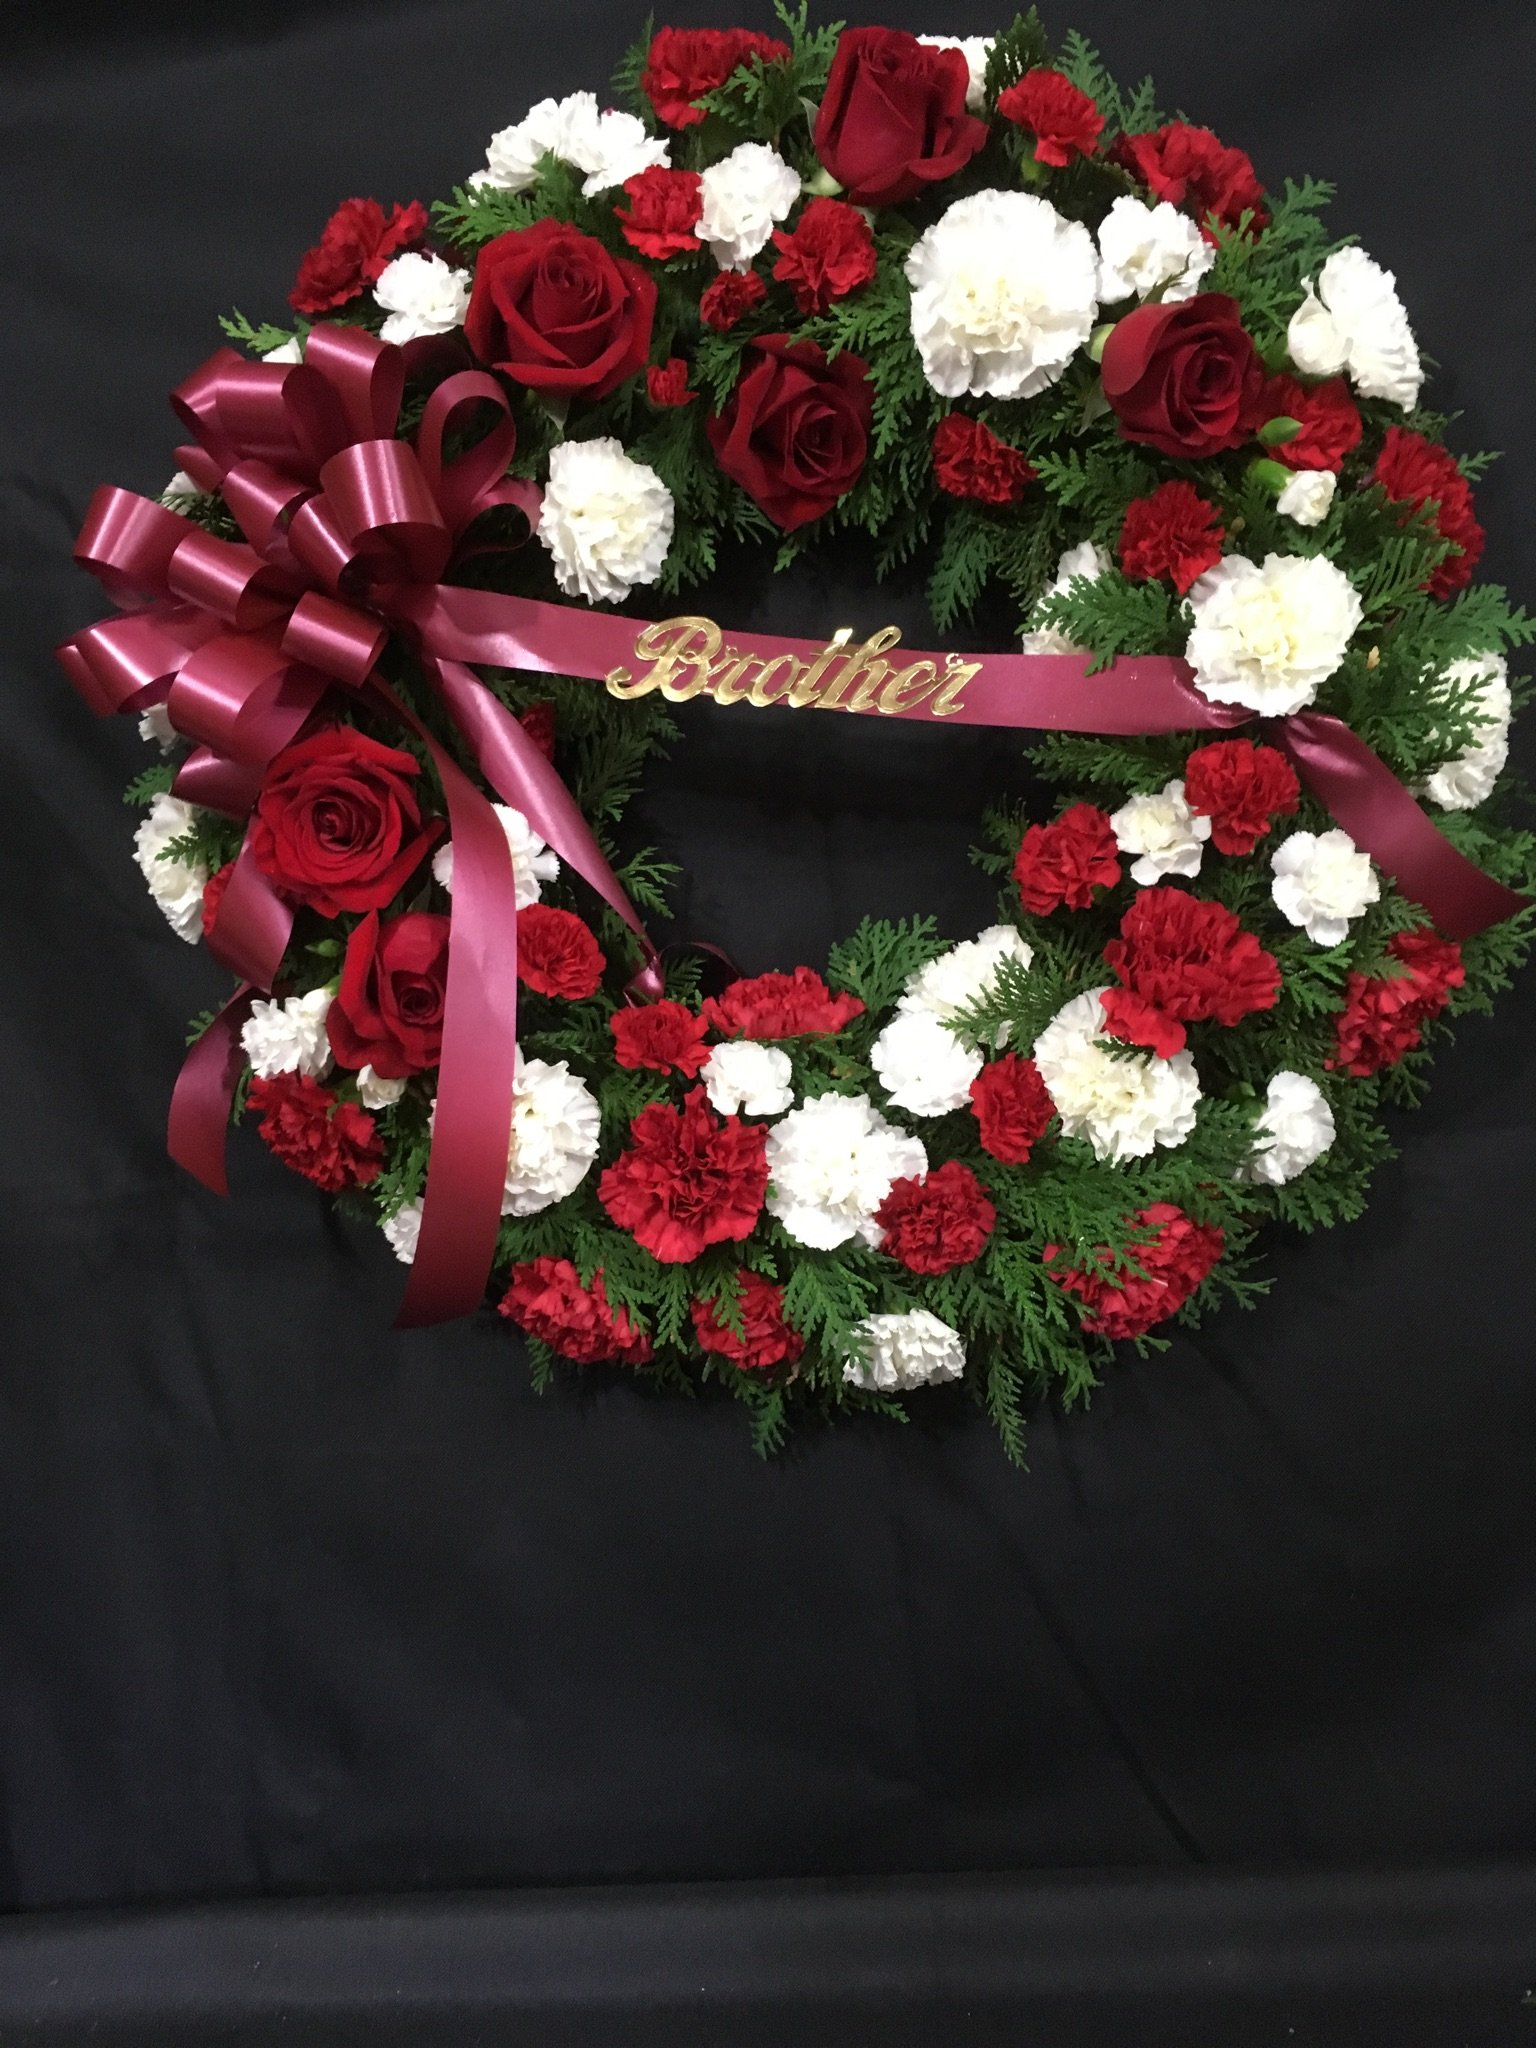 Funeral flowers gloversville ny lohse florist check out our funeral flowers in gloversville nyplease call for prices and availability izmirmasajfo